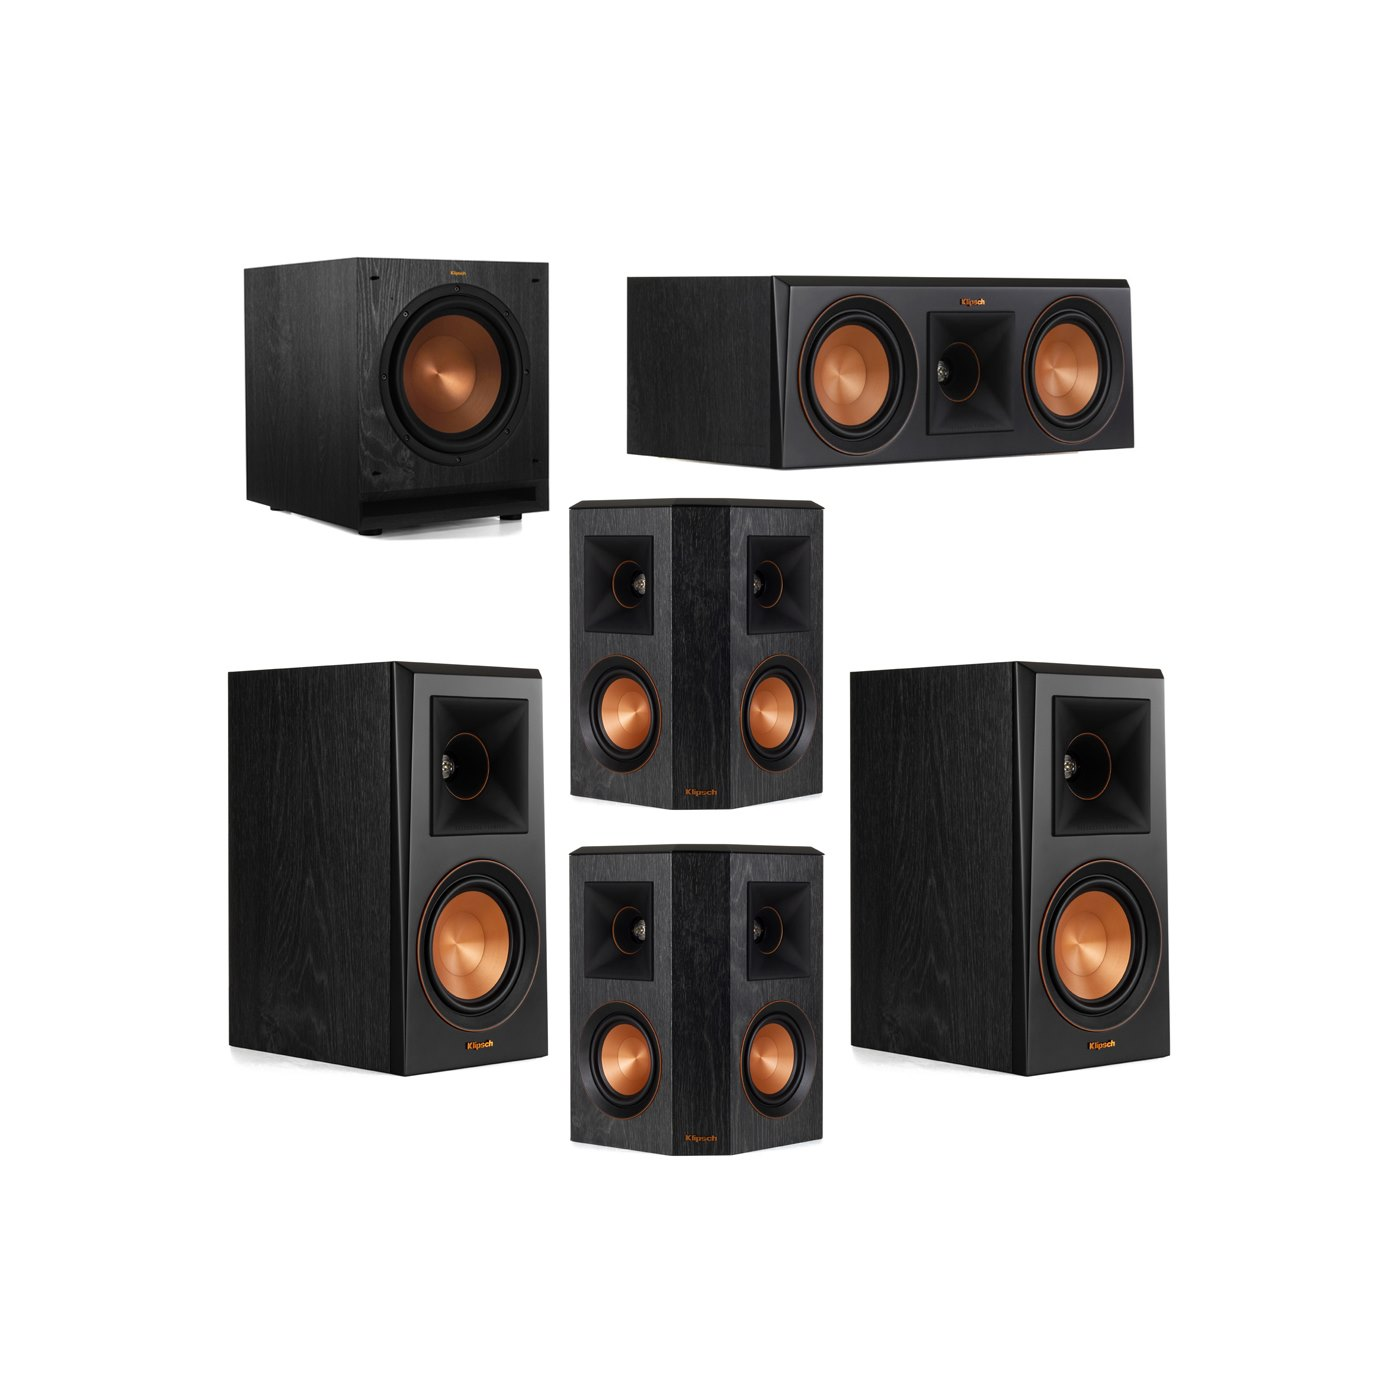 Klipsch 5.1 System with 2 RP-500M Bookshelf Speakers, 1 Klipsch RP-500C Center Speaker, 2 Klipsch RP-402S Surround Speakers, 1 Klipsch SPL-100 Subwoofer